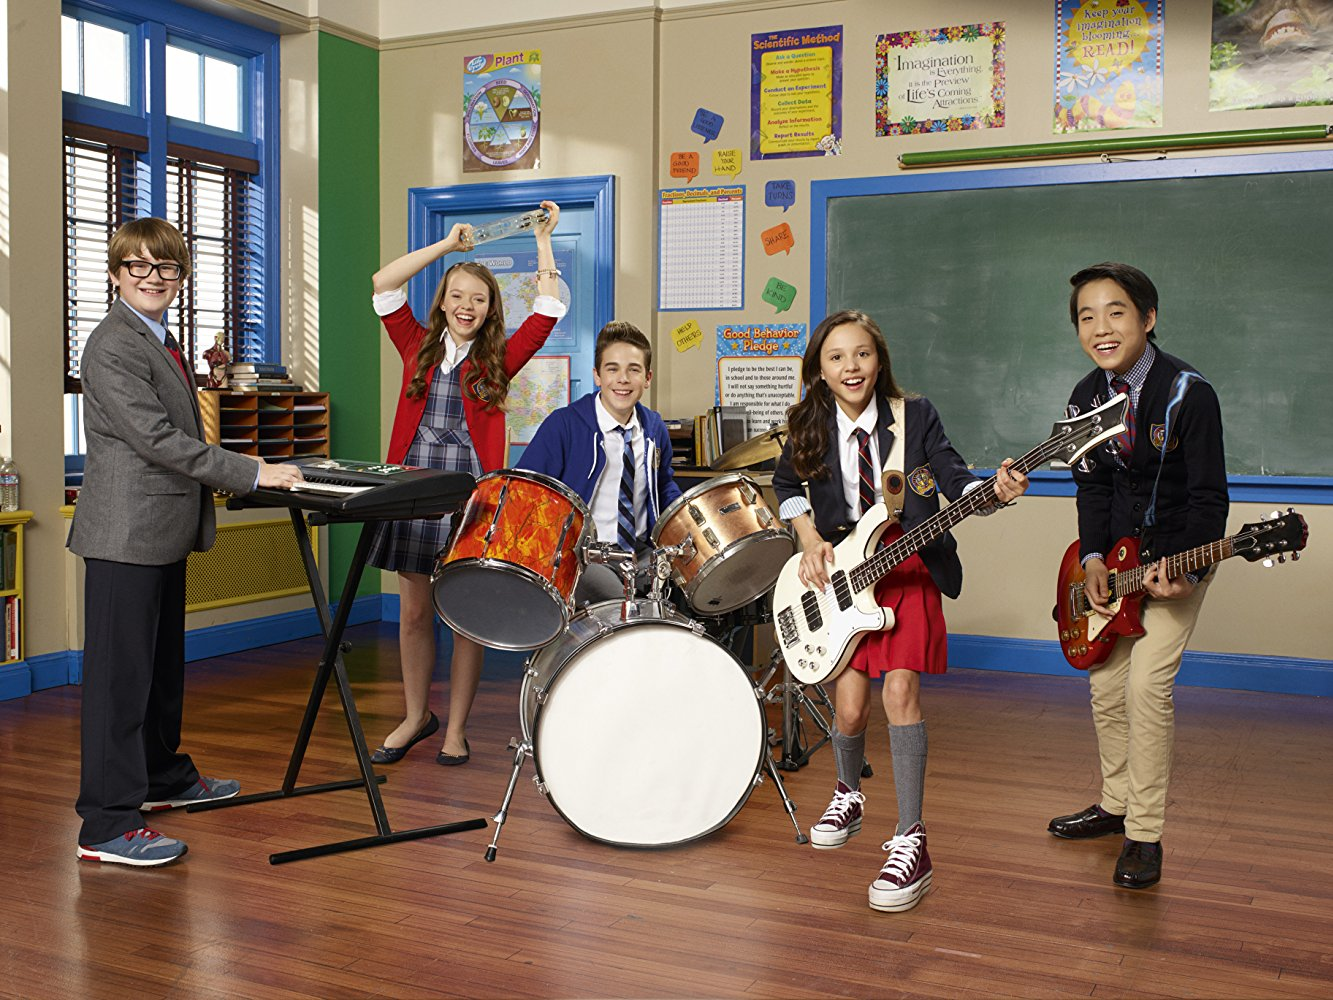 School of Rock - Season 3